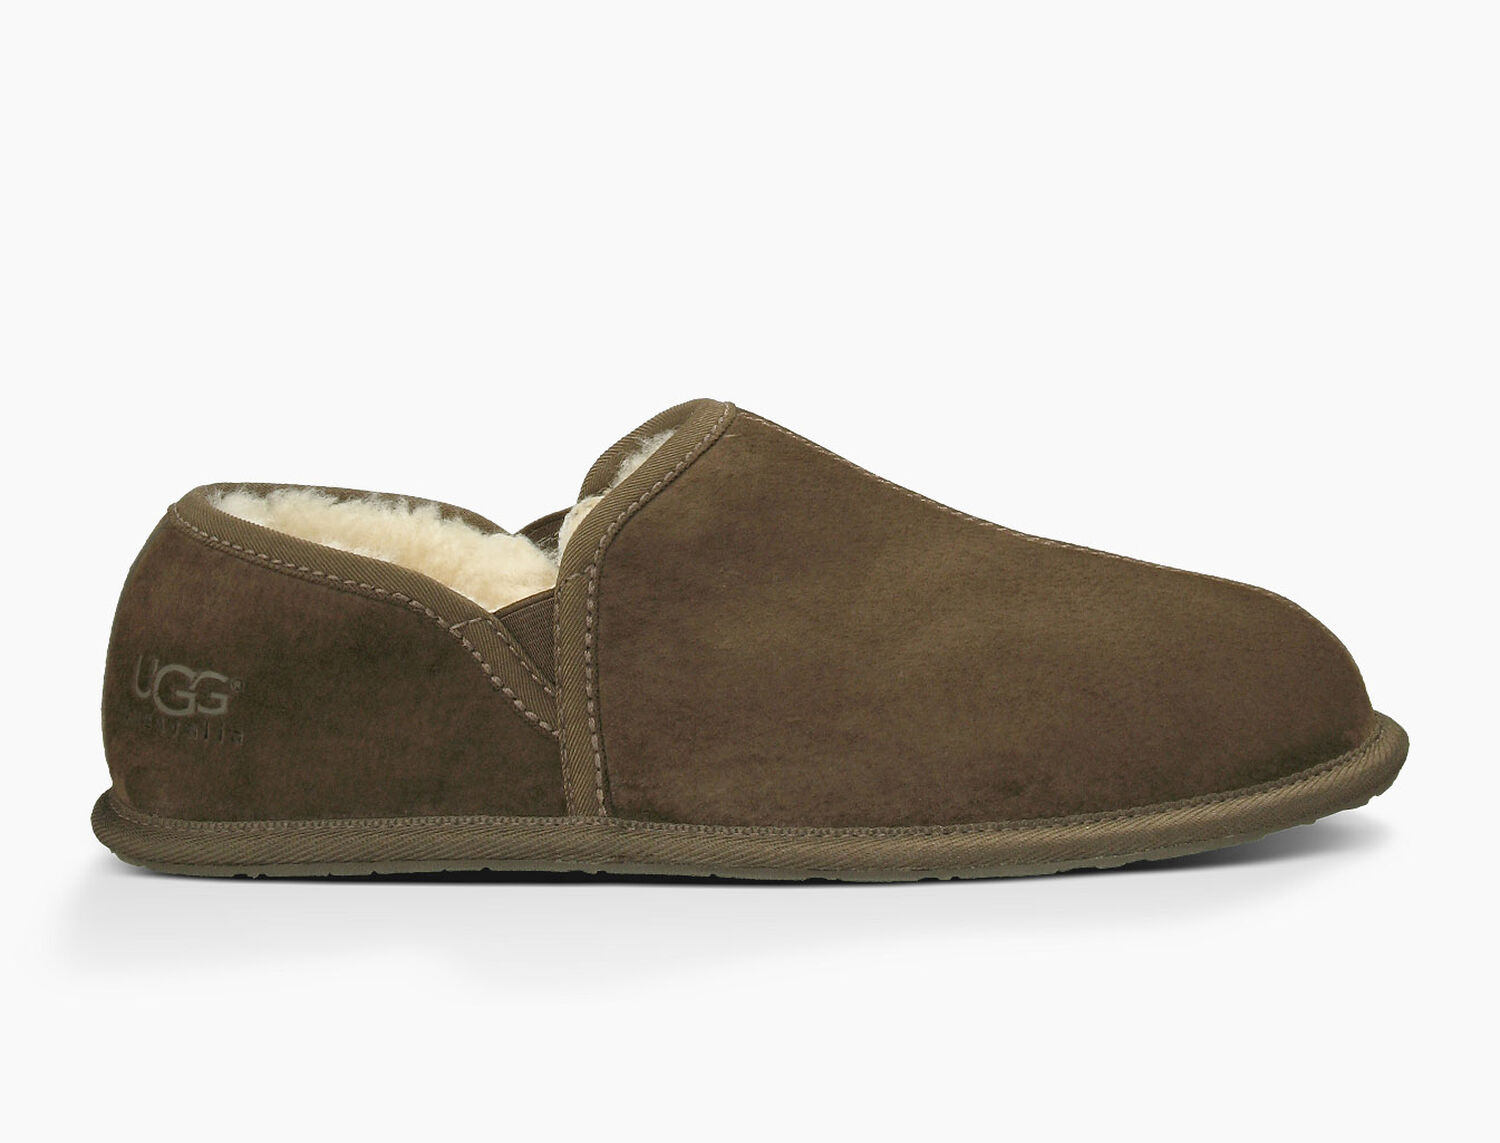 ugg mens slippers clearance uk